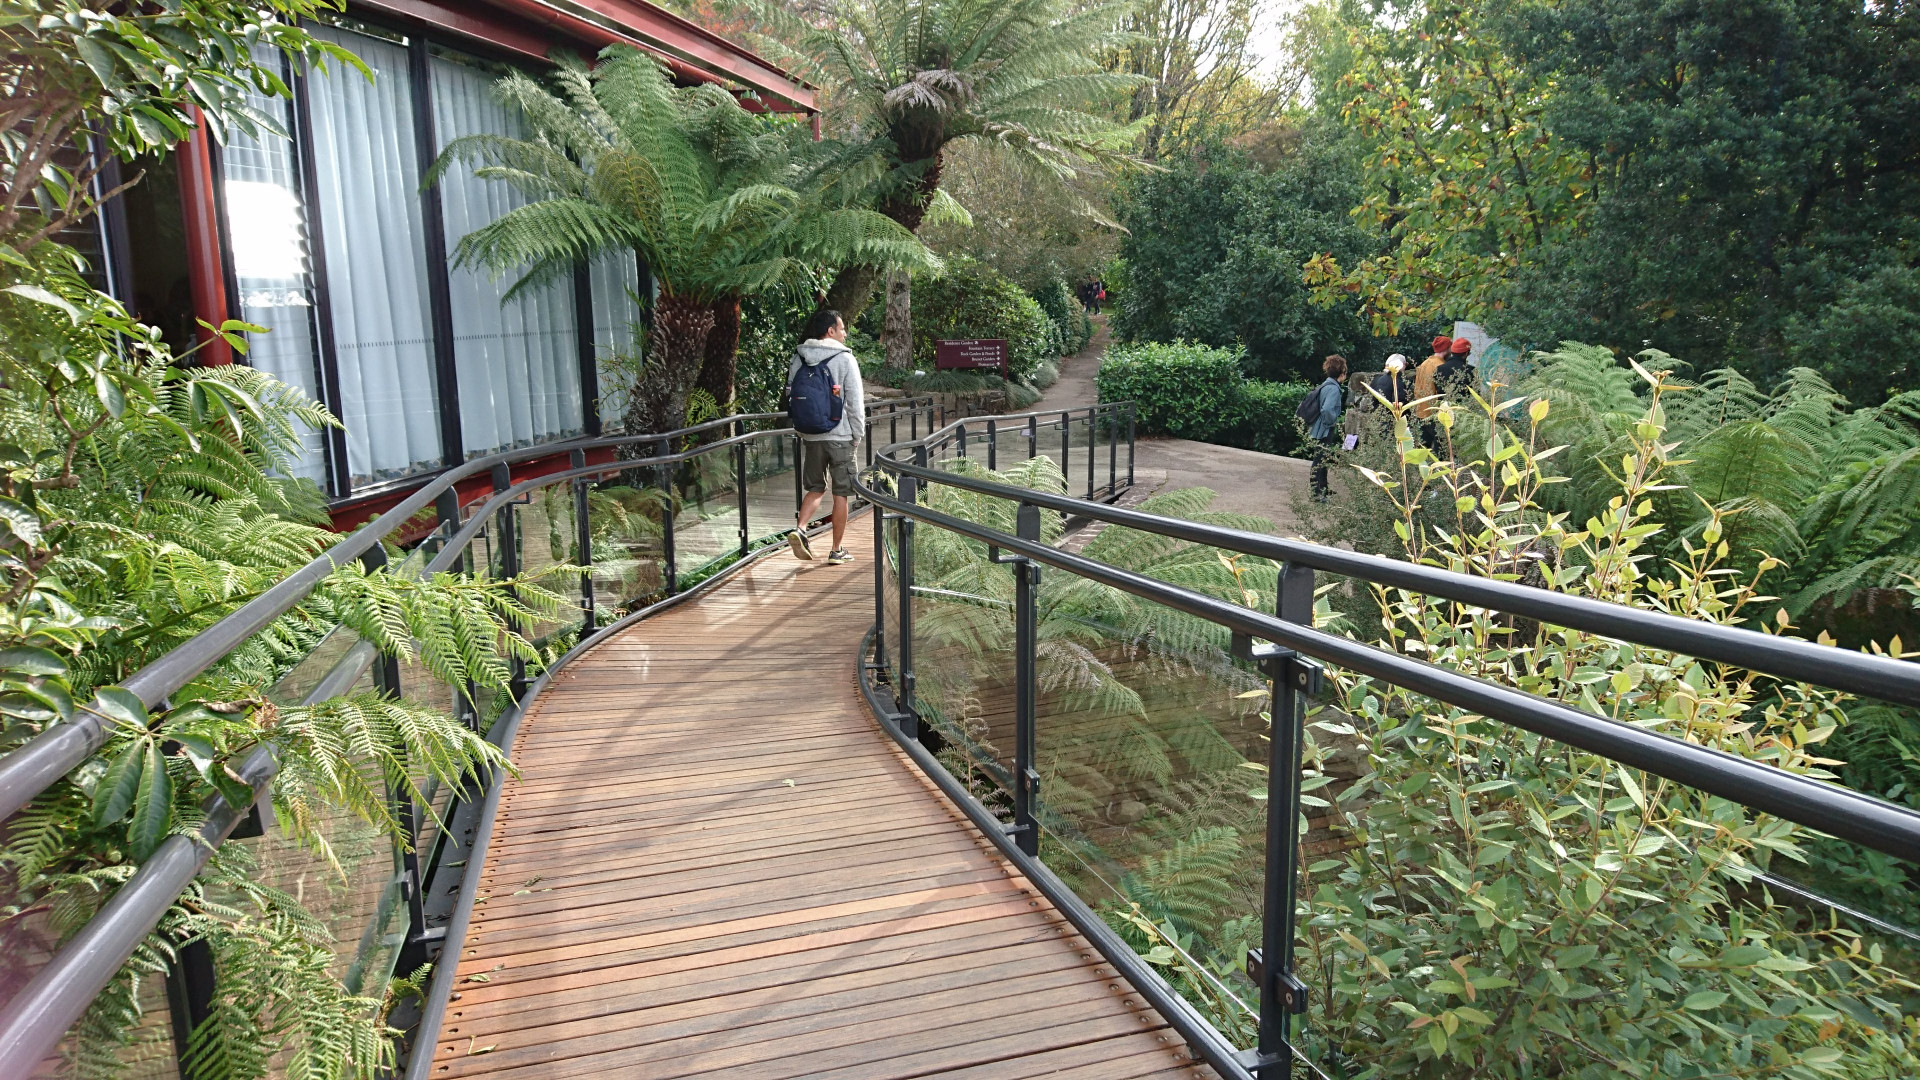 Heading off towards the residence garden at Mount Tomah